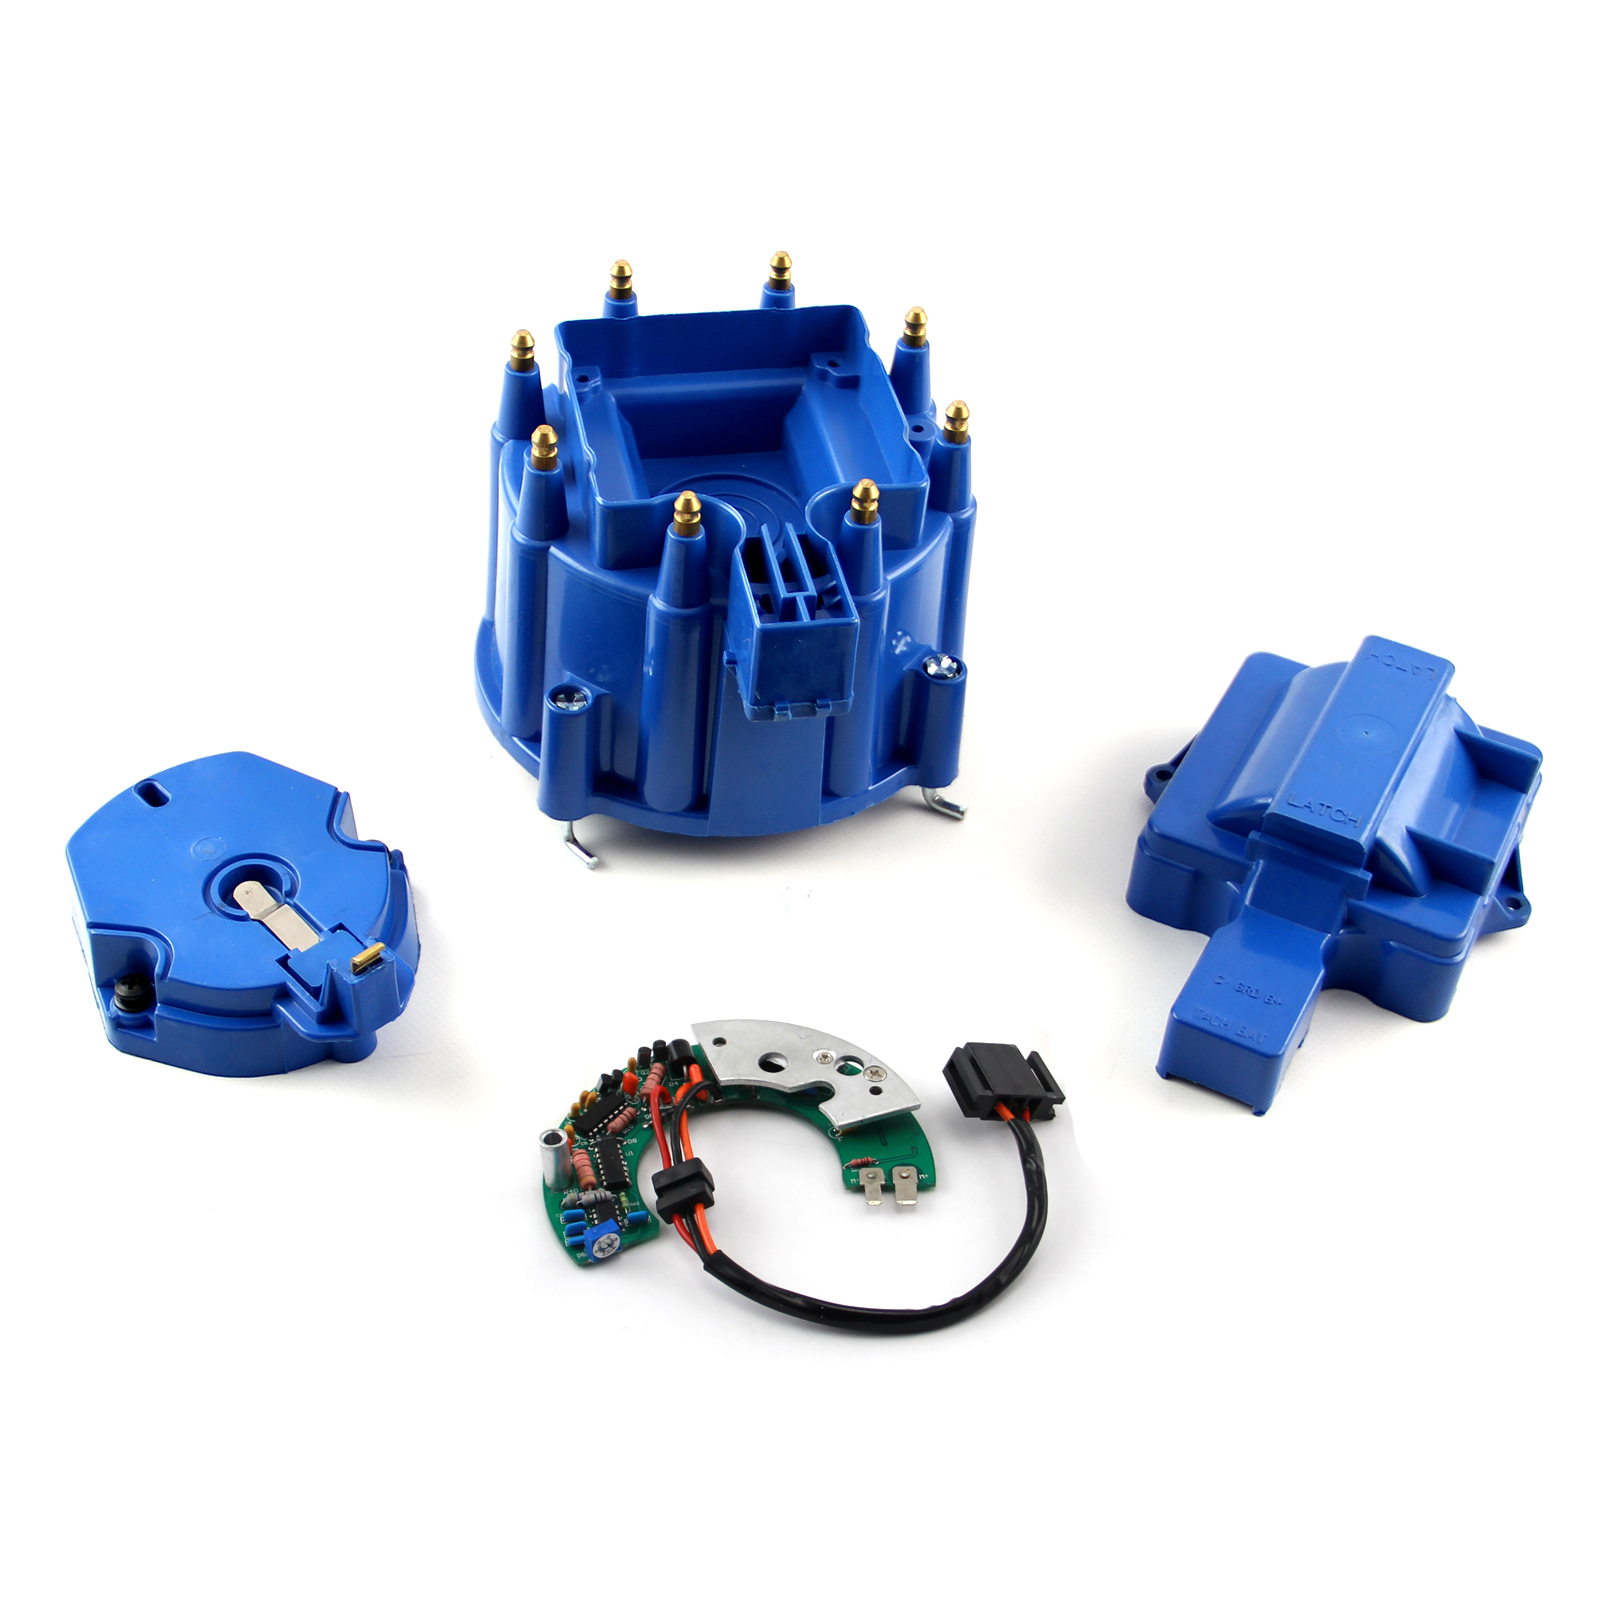 Chevy SBC BBC HEI Red Distributor Cap Rotor & Module Kit - Blue